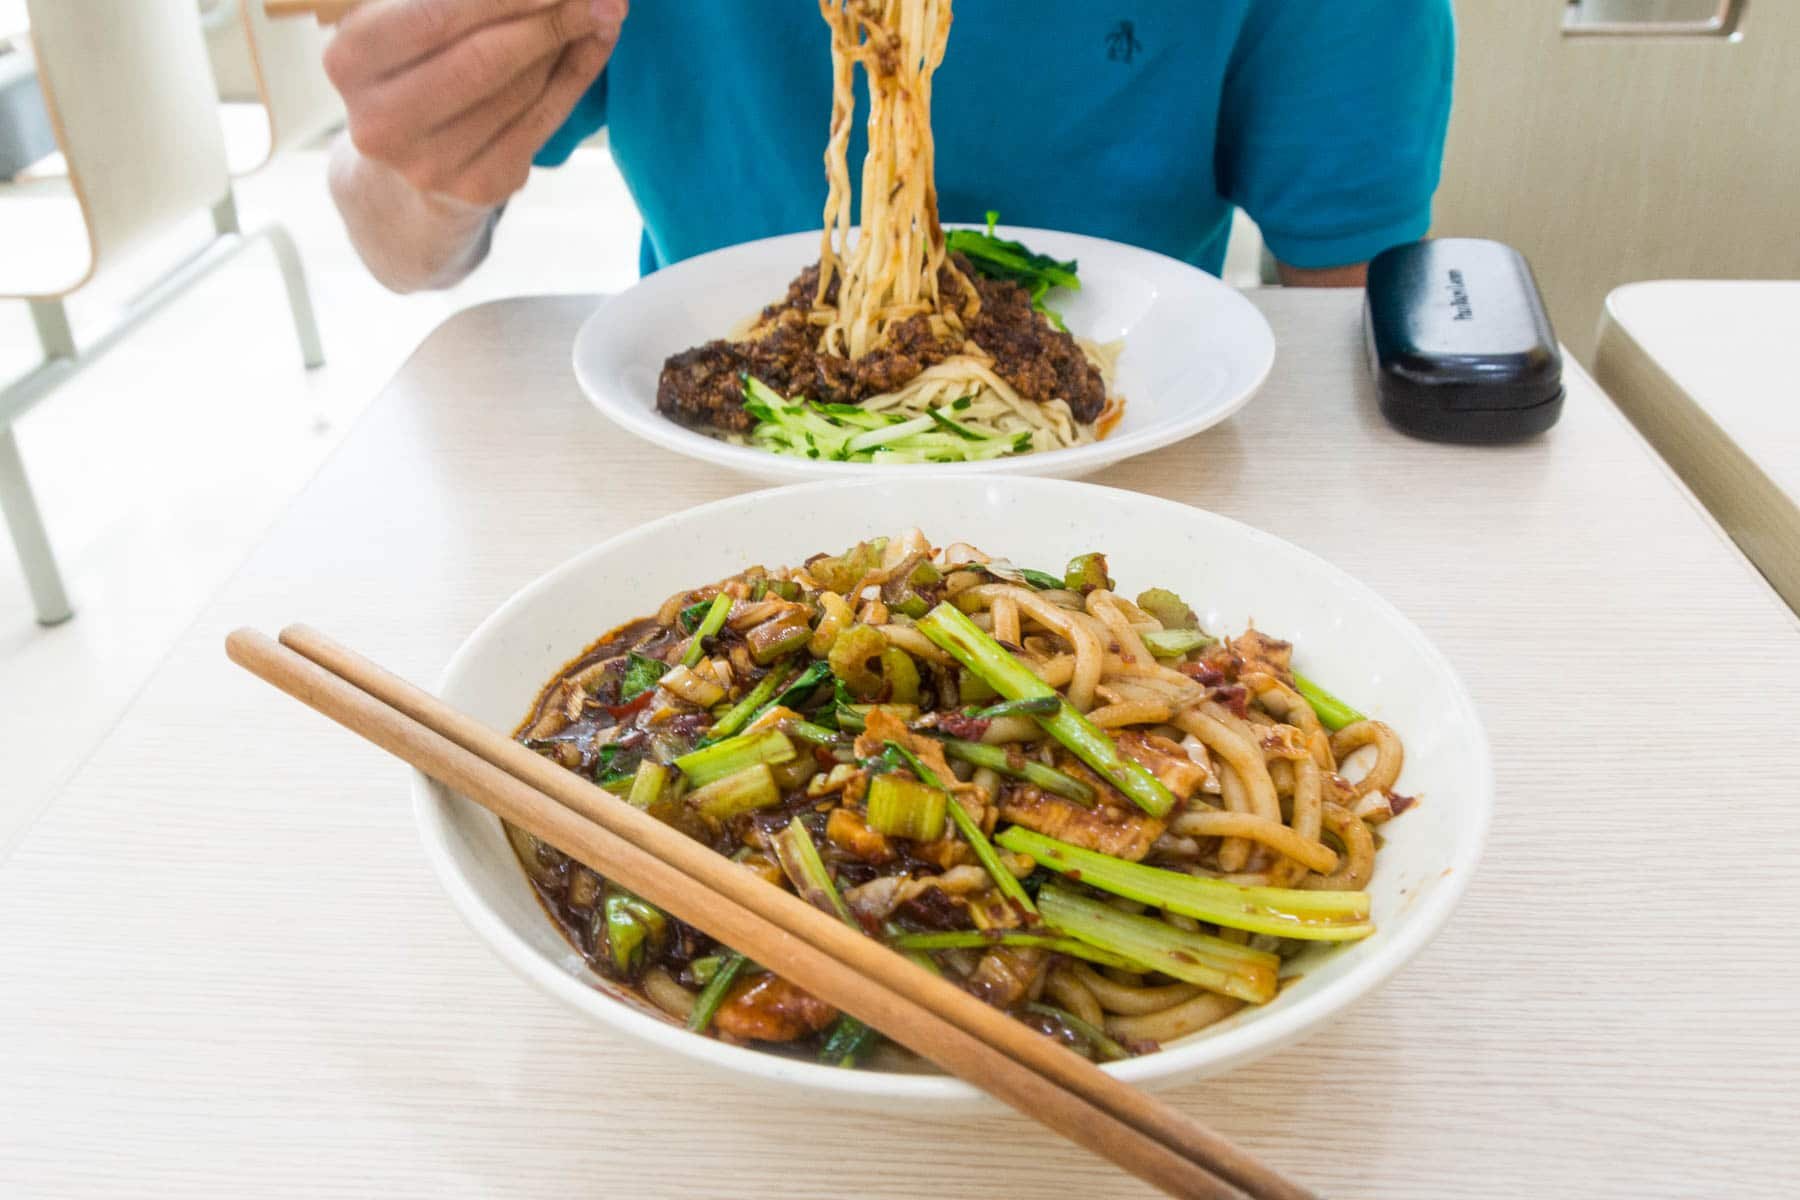 A bowl of noodles in Urumqi, China